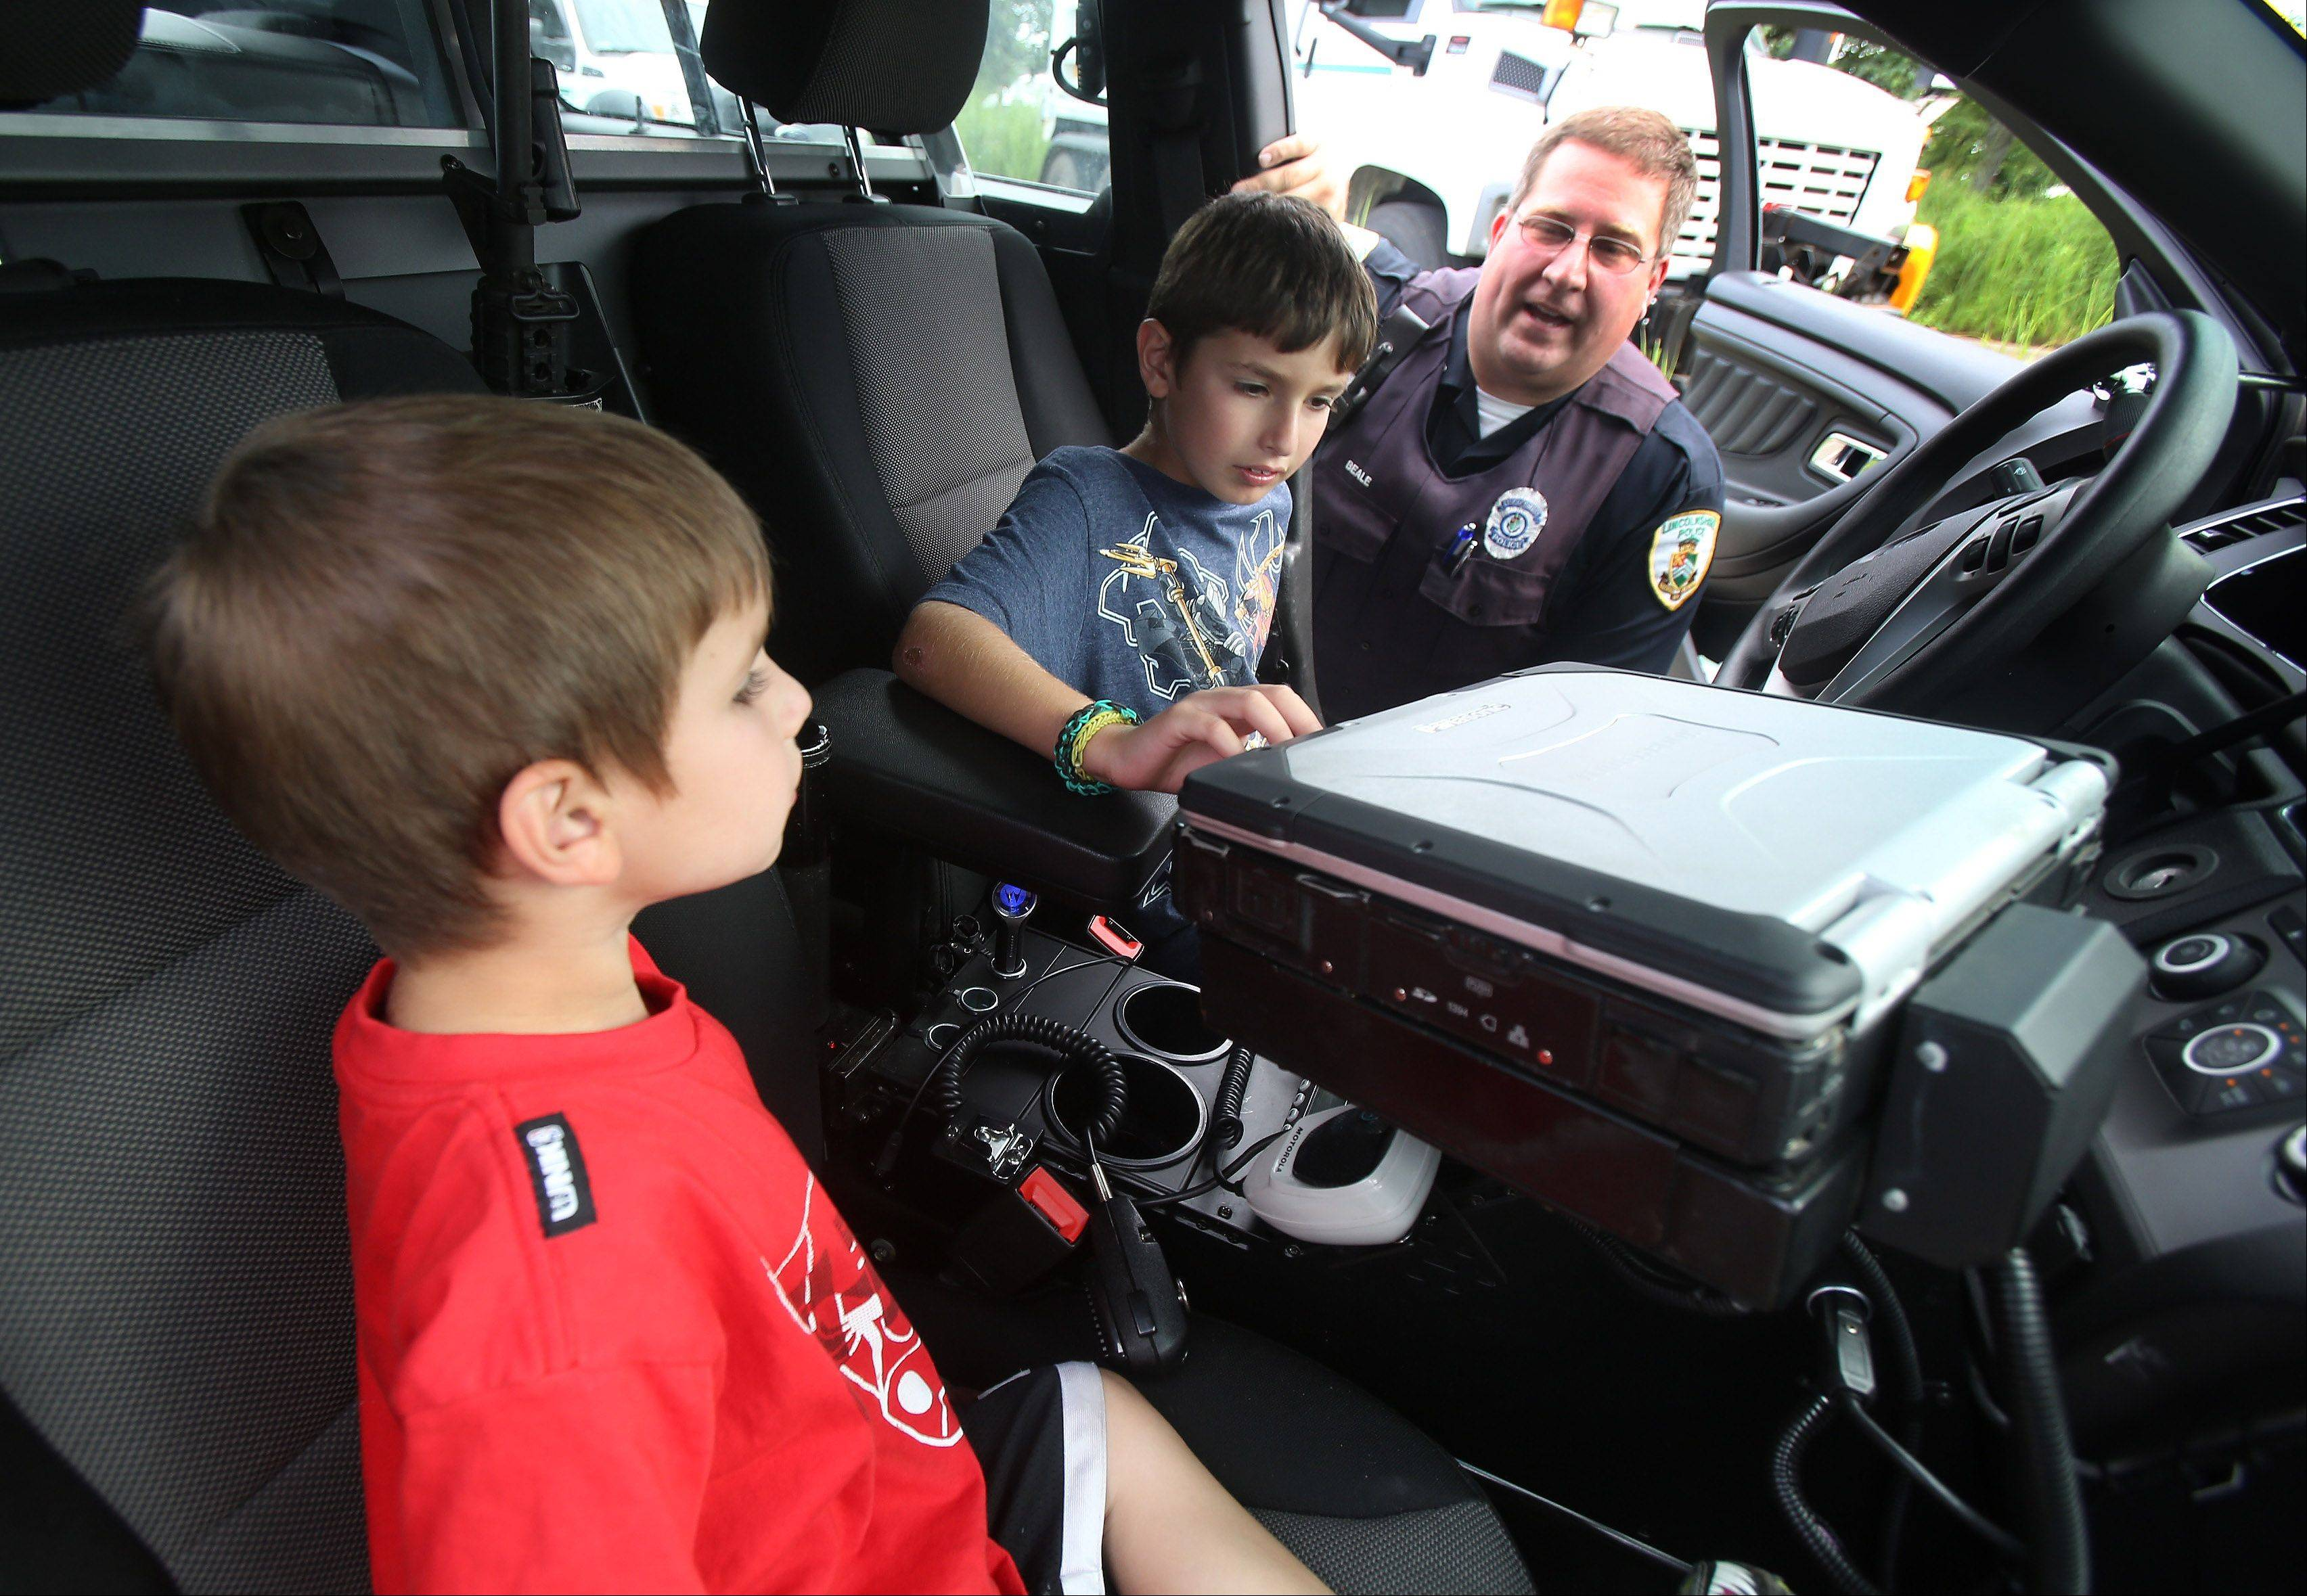 Lincolnshire Police Ofc. T. J. Beale describes the interior of a police car with Josh Cohen, 8, and his brother, Dylan, 4, of Buffalo Grove during the Lincolnshire National Night Out Tuesday at North Park. The event offered child identification cards, mock crime scenes, police dog demonstrations, a chance to see a Flight For Life helicopter and more.